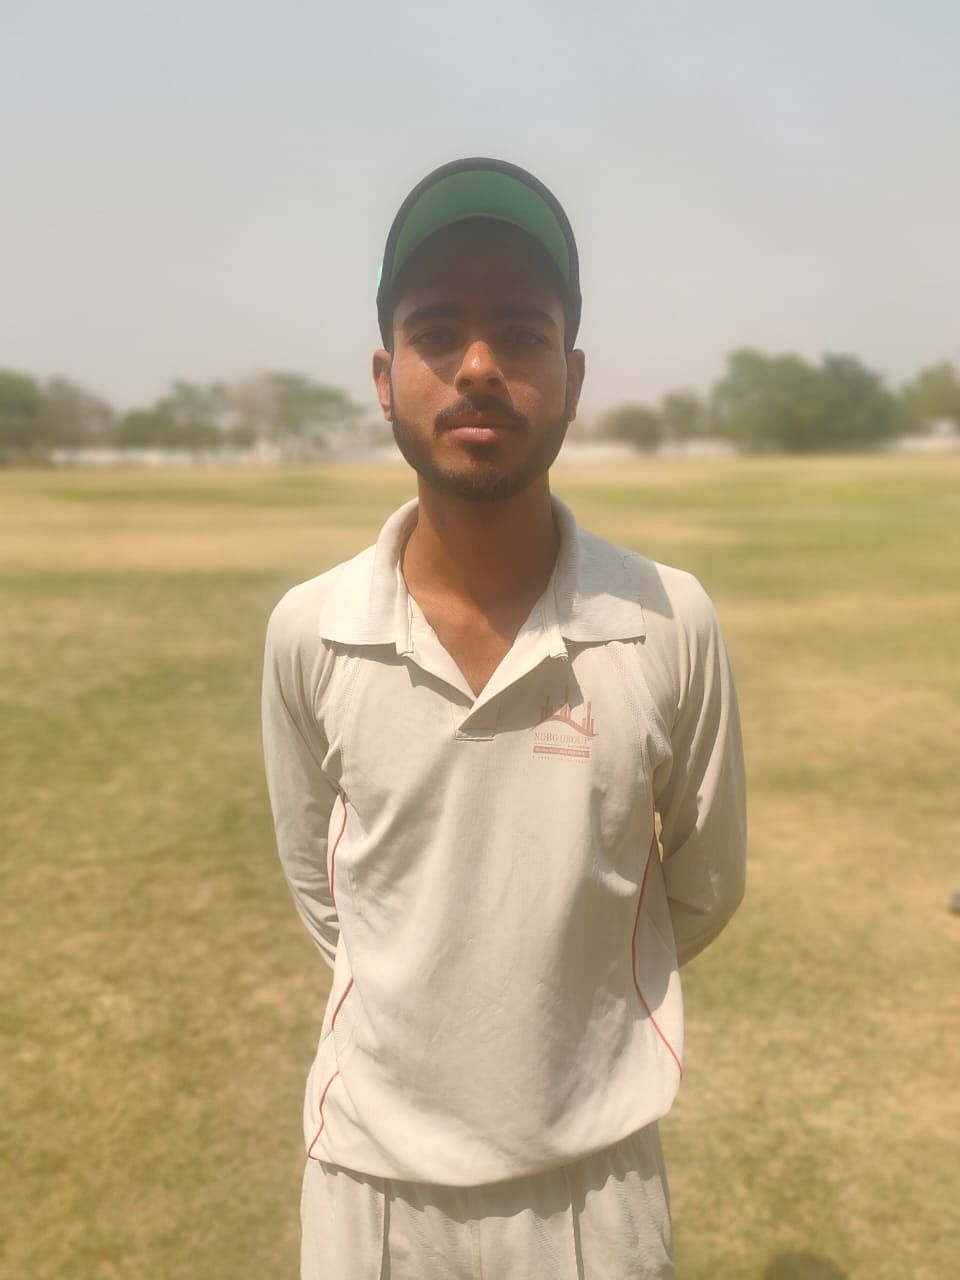 batting-batsman-of-satyam-awasthi-youth-captured-the-title-by-defeating-central